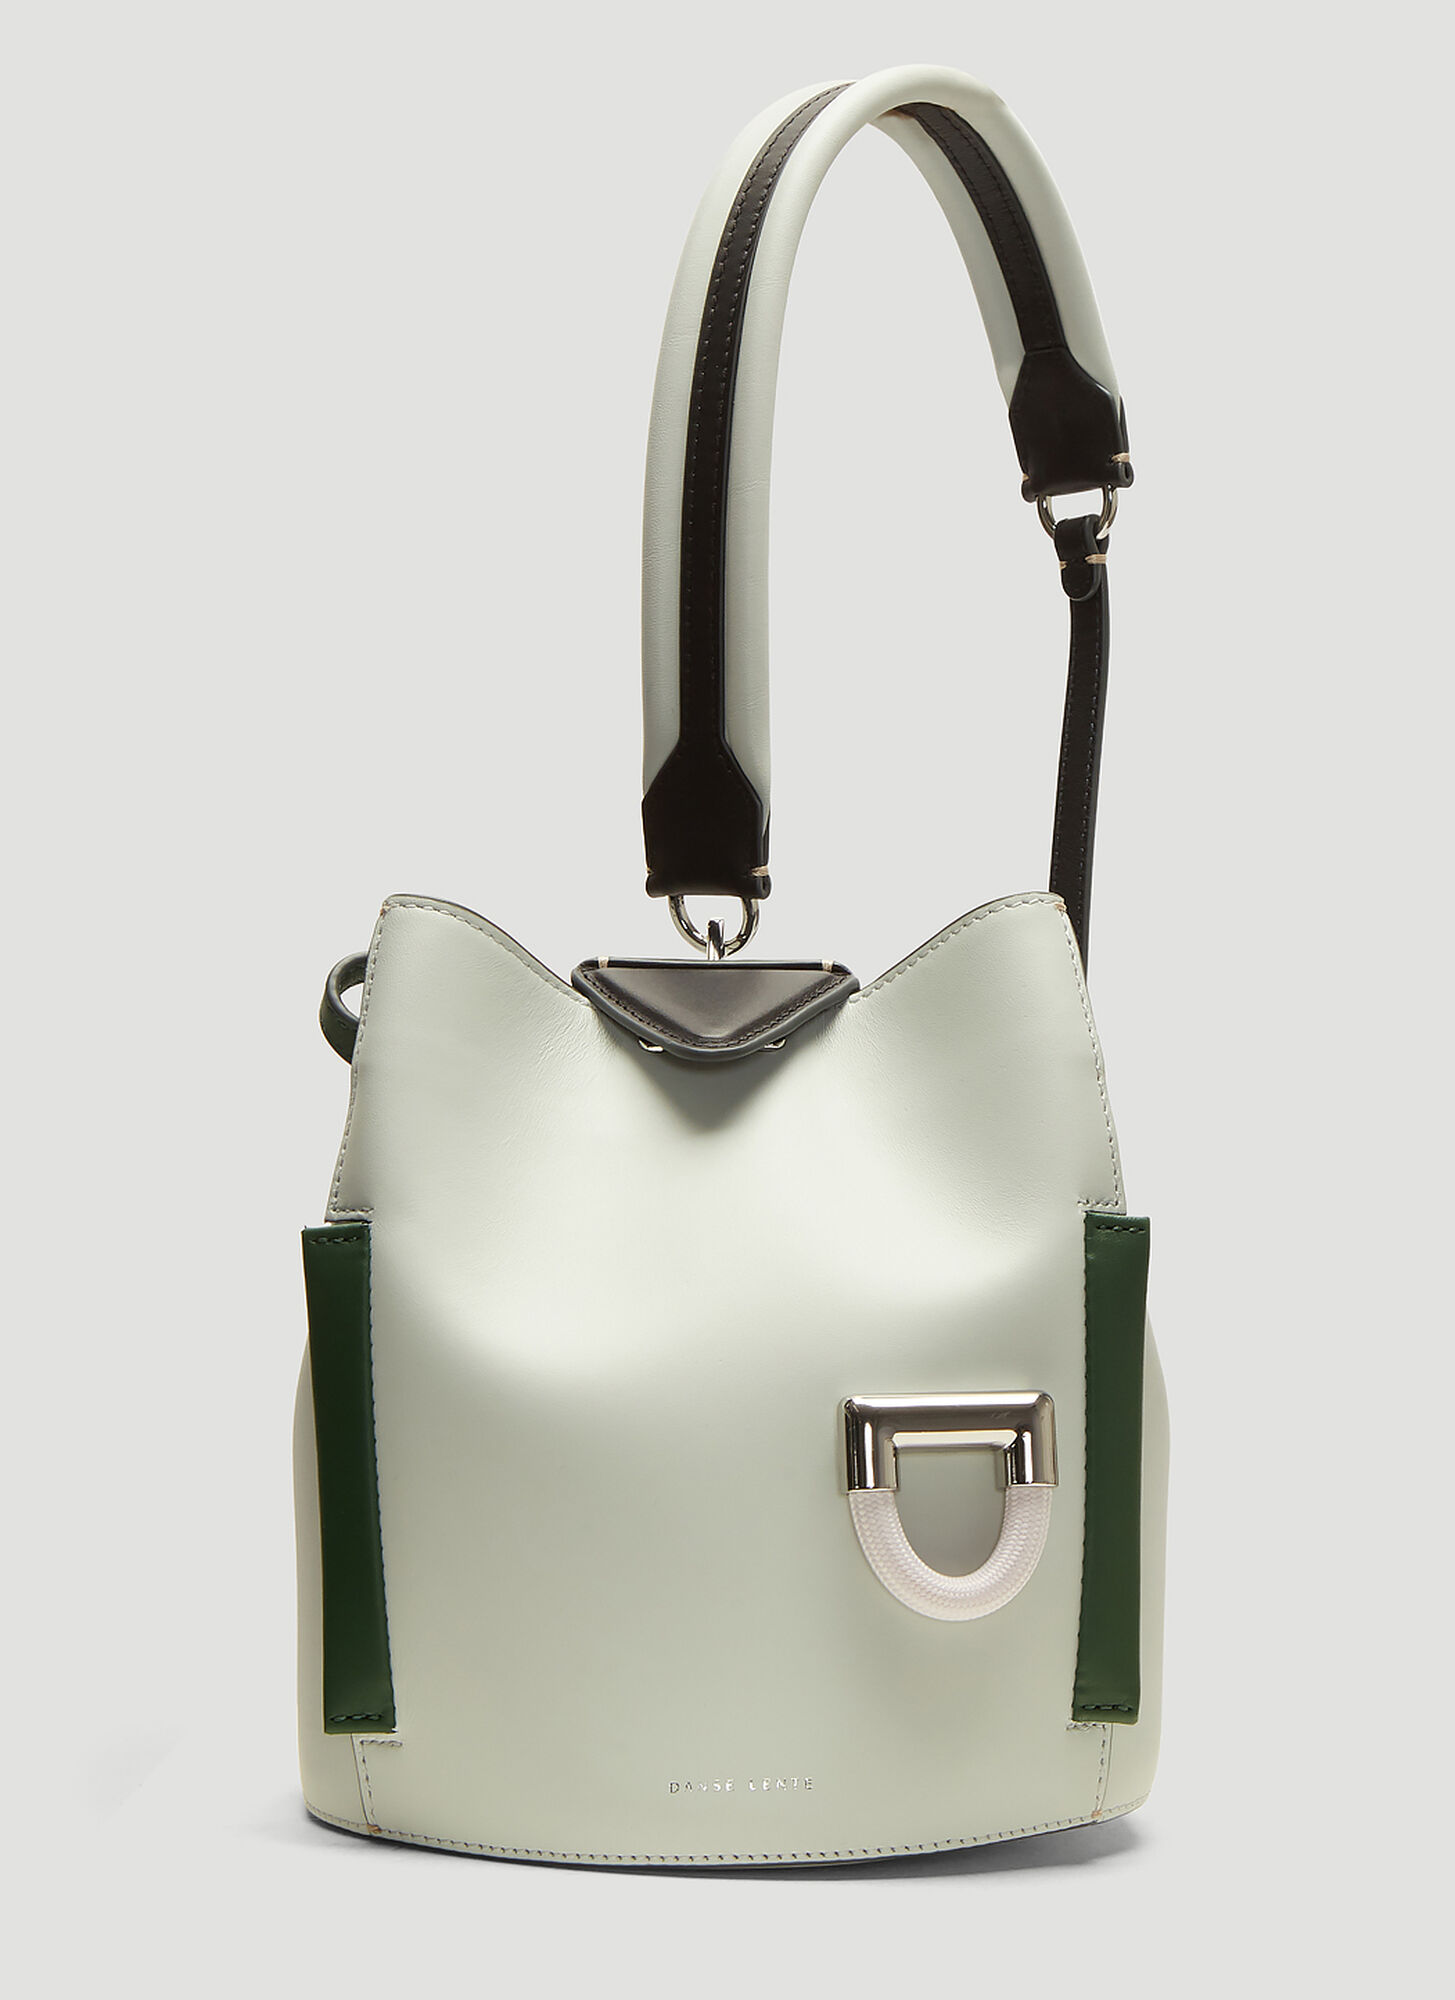 Danse Lente Josh Shoulder Bag in Green